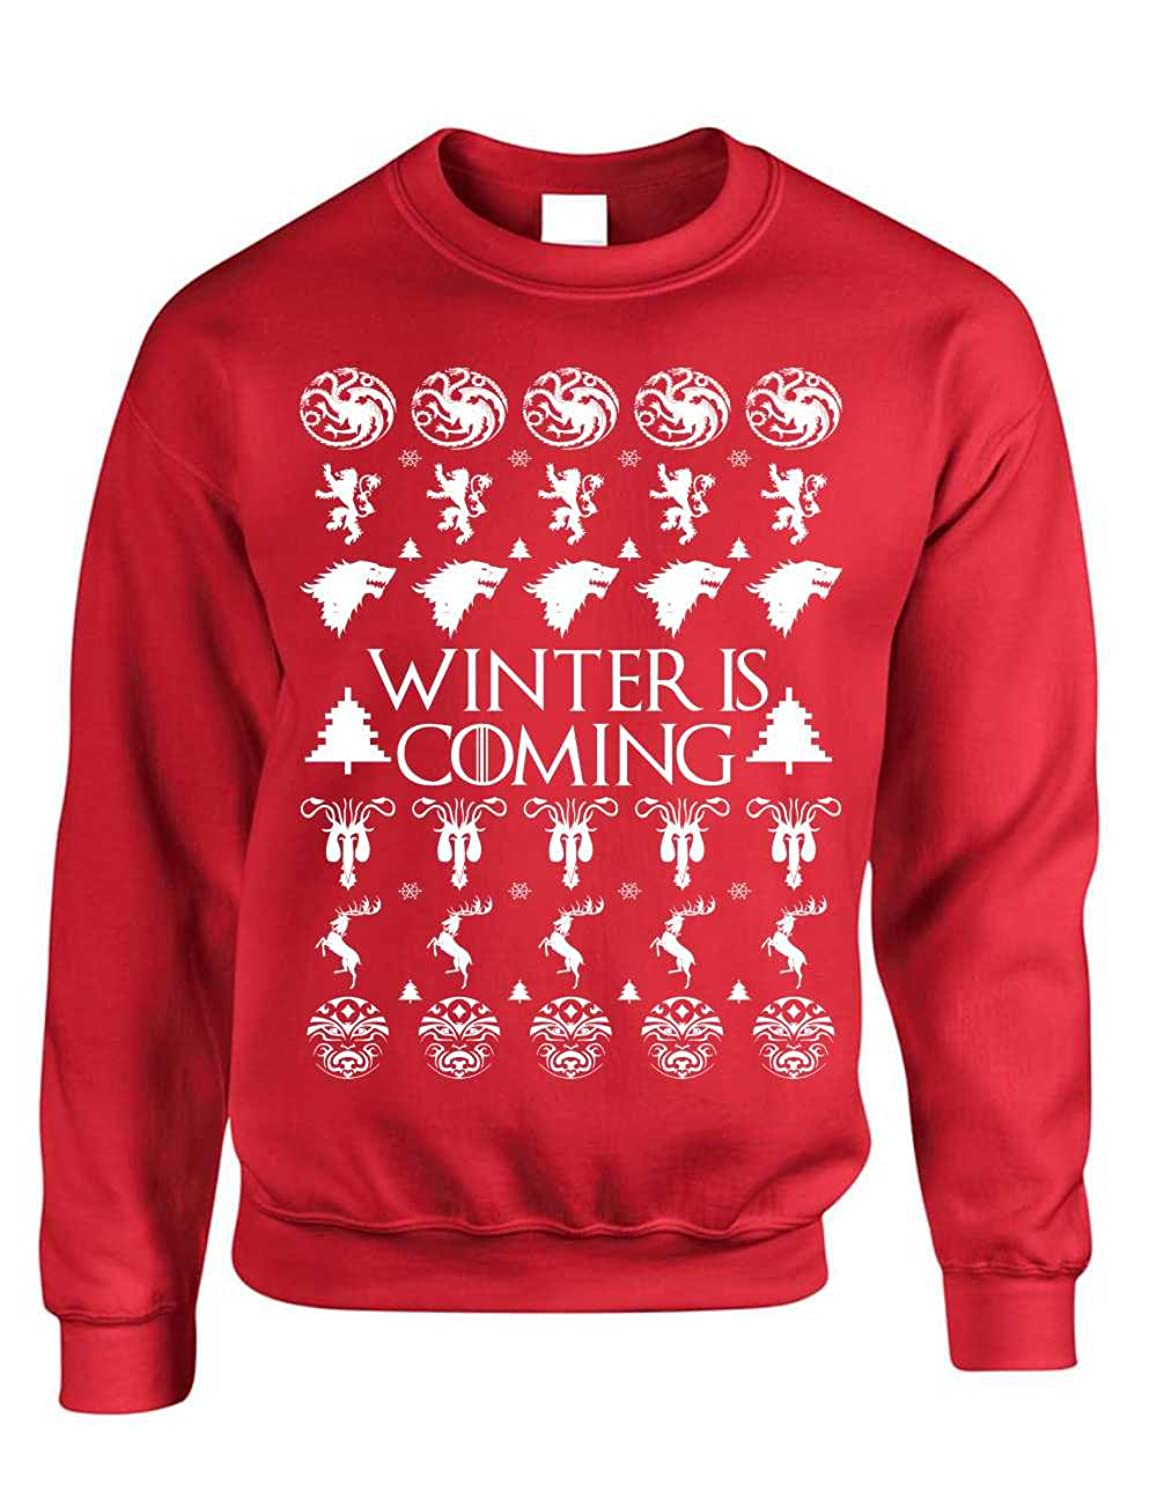 01a3dd1a4 Allntrends Adult Crewneck Winter Is Coming Ugly Christmas Sweater Holiday  hot sale 2017